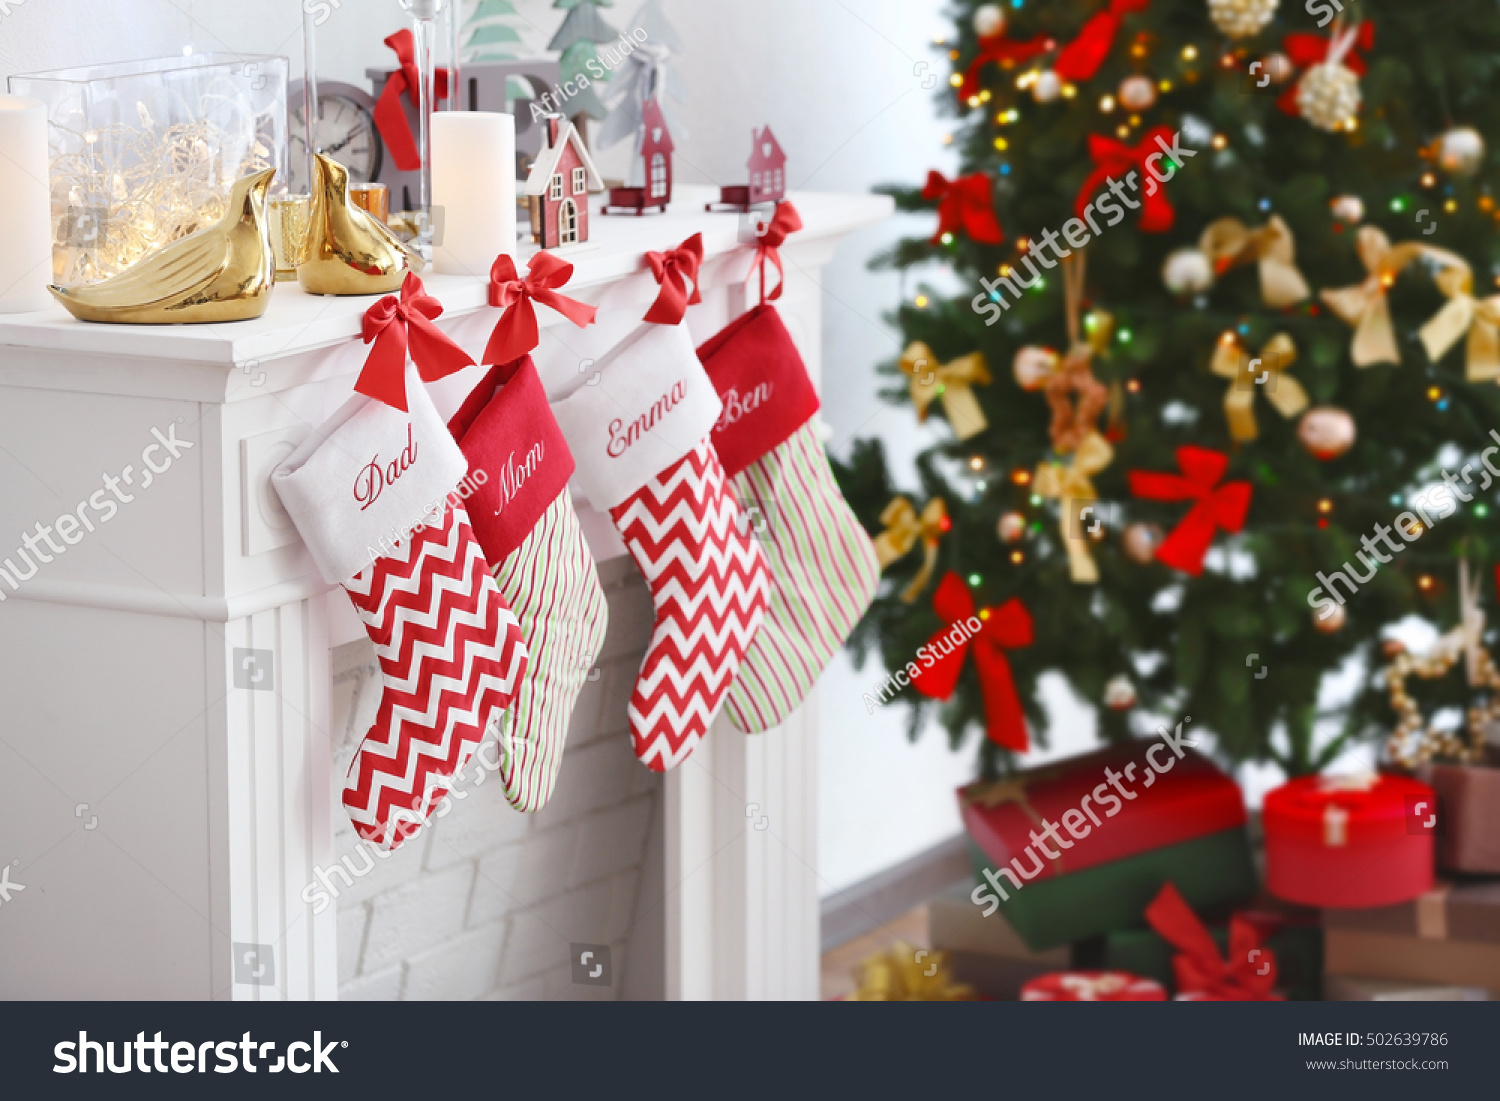 Christmas socks hanging on fireplace in room interior